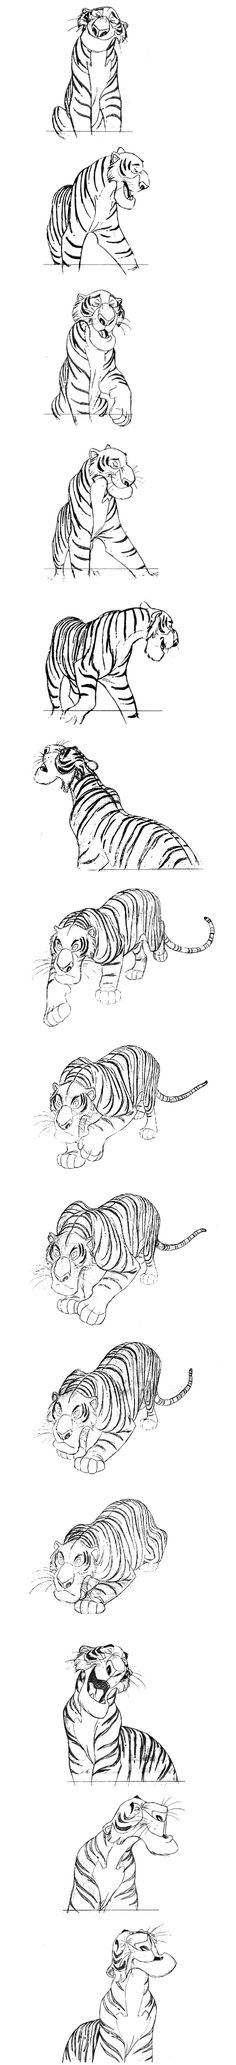 """""""Shere Khan"""" by Milt Kahl* • """"The Jungle Book""""   © Walt Disney Animation Studios*  • Blog/Website   (www.disneyanimation.com) • Online Store    (http://www.disneystore.com) ★    CHARACTER DESIGN REFERENCES (https://www.facebook.com/CharacterDesignReferences & https://www.pinterest.com/characterdesigh) • Love Character Design? Join the #CDChallenge (link→ https://www.facebook.com/groups/CharacterDesignChallenge) Promote your art in a community of over 25.000 artists!    ★"""